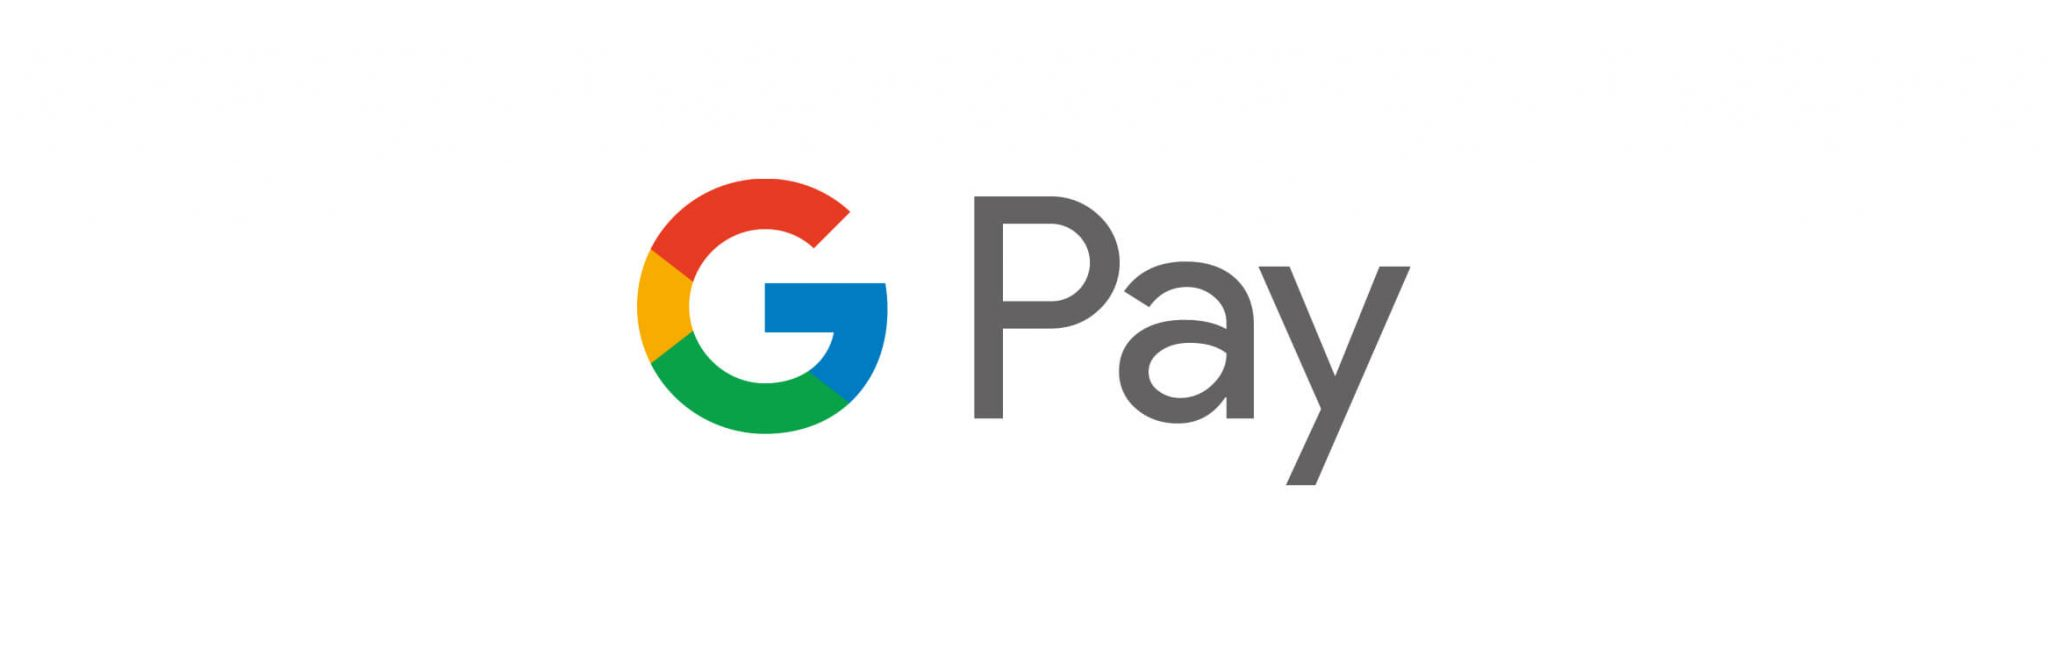 mobile_wallets_googlepay.jpg